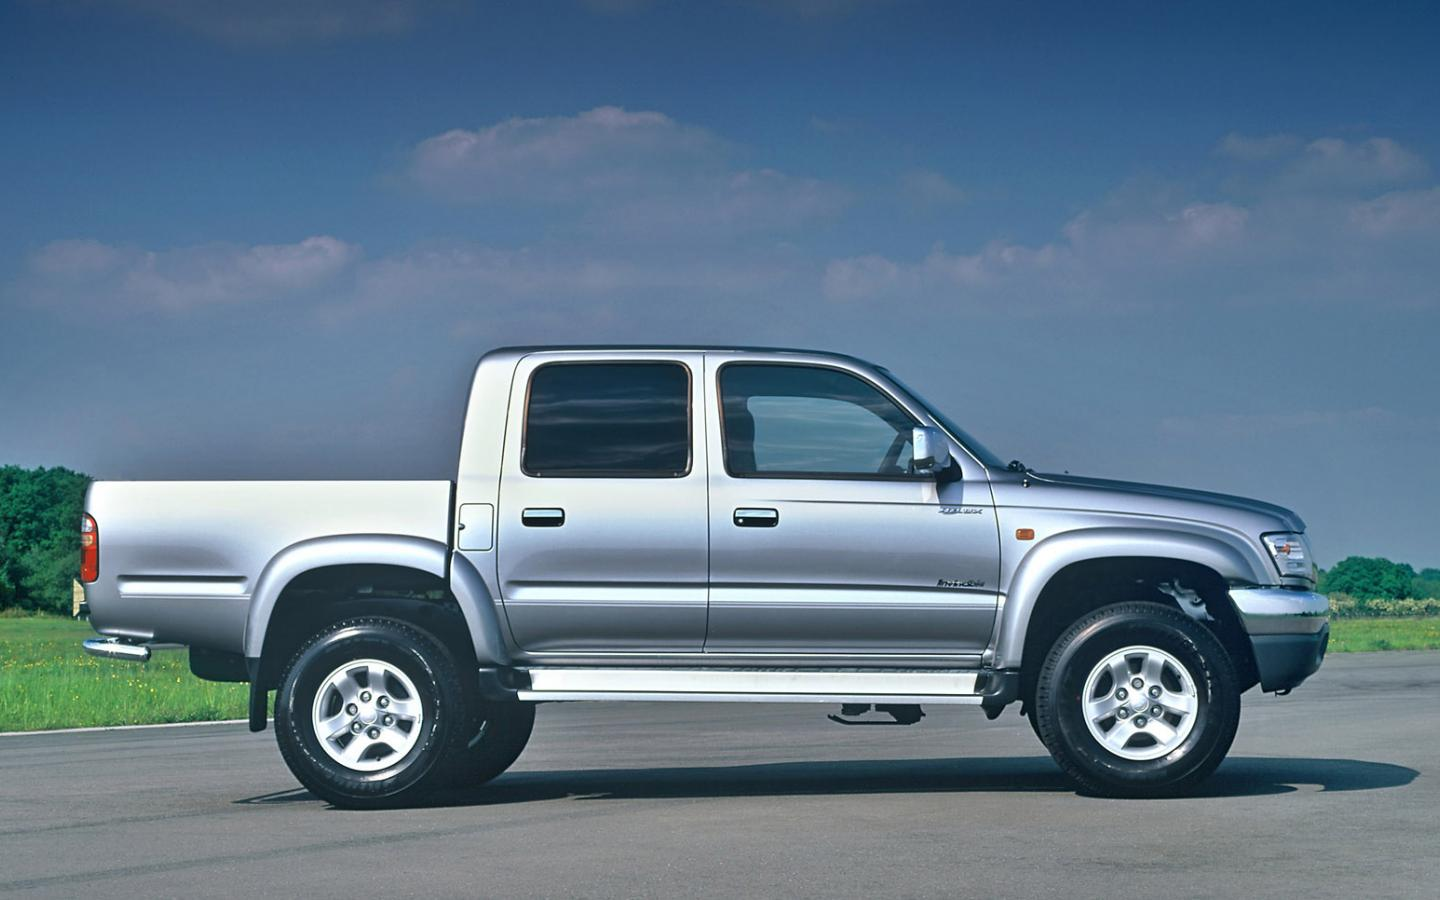 2004 toyota hilux invincible picture 2 of 3